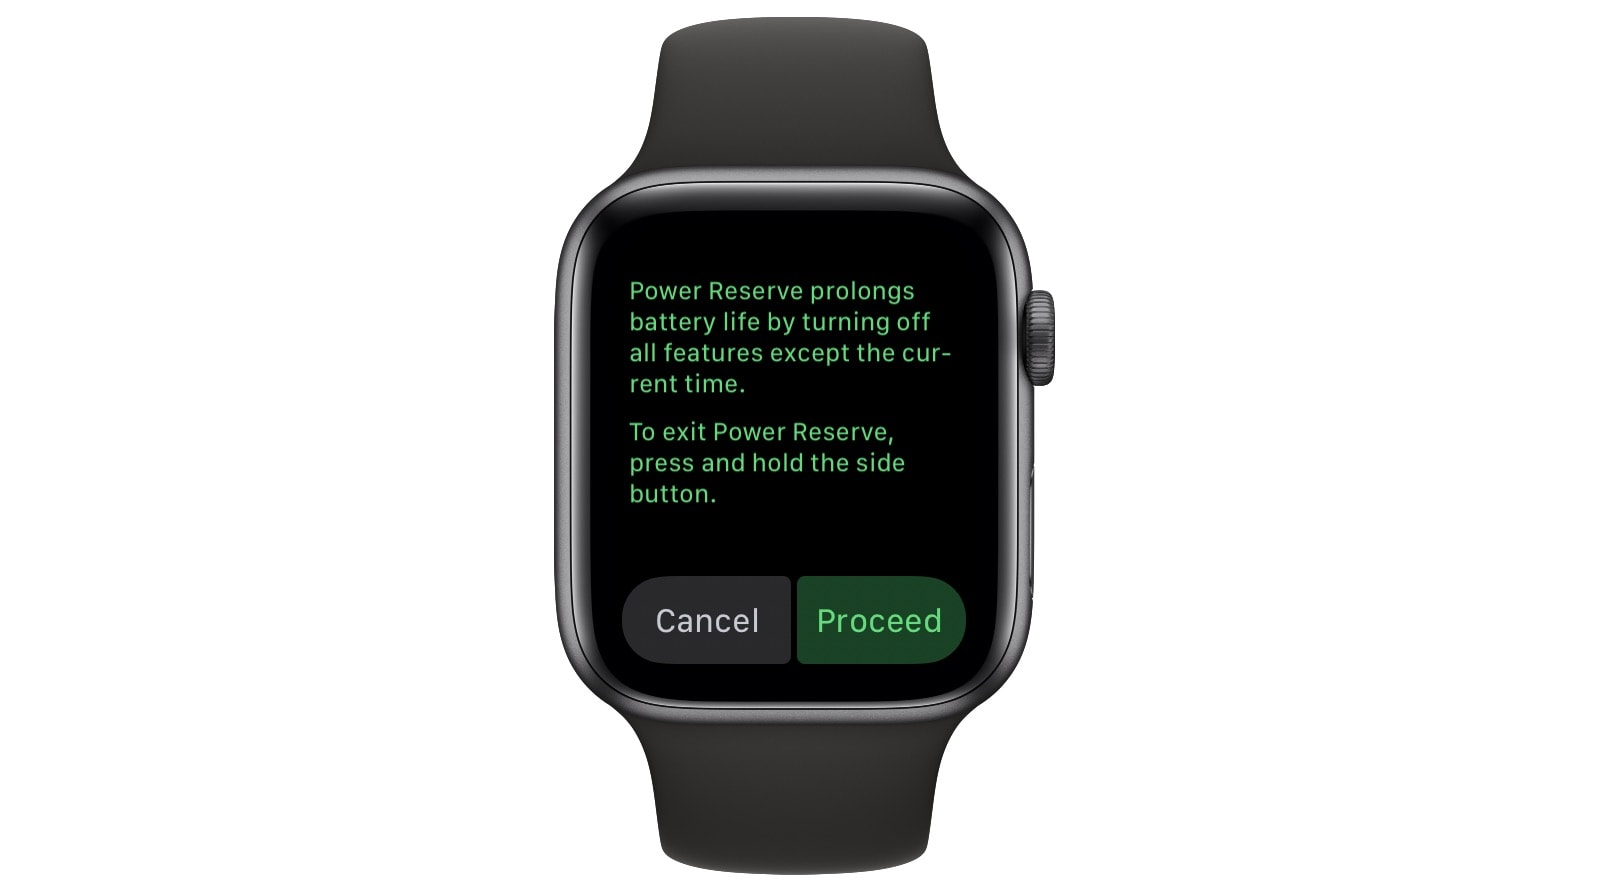 Apple Watch's Power Reserve.